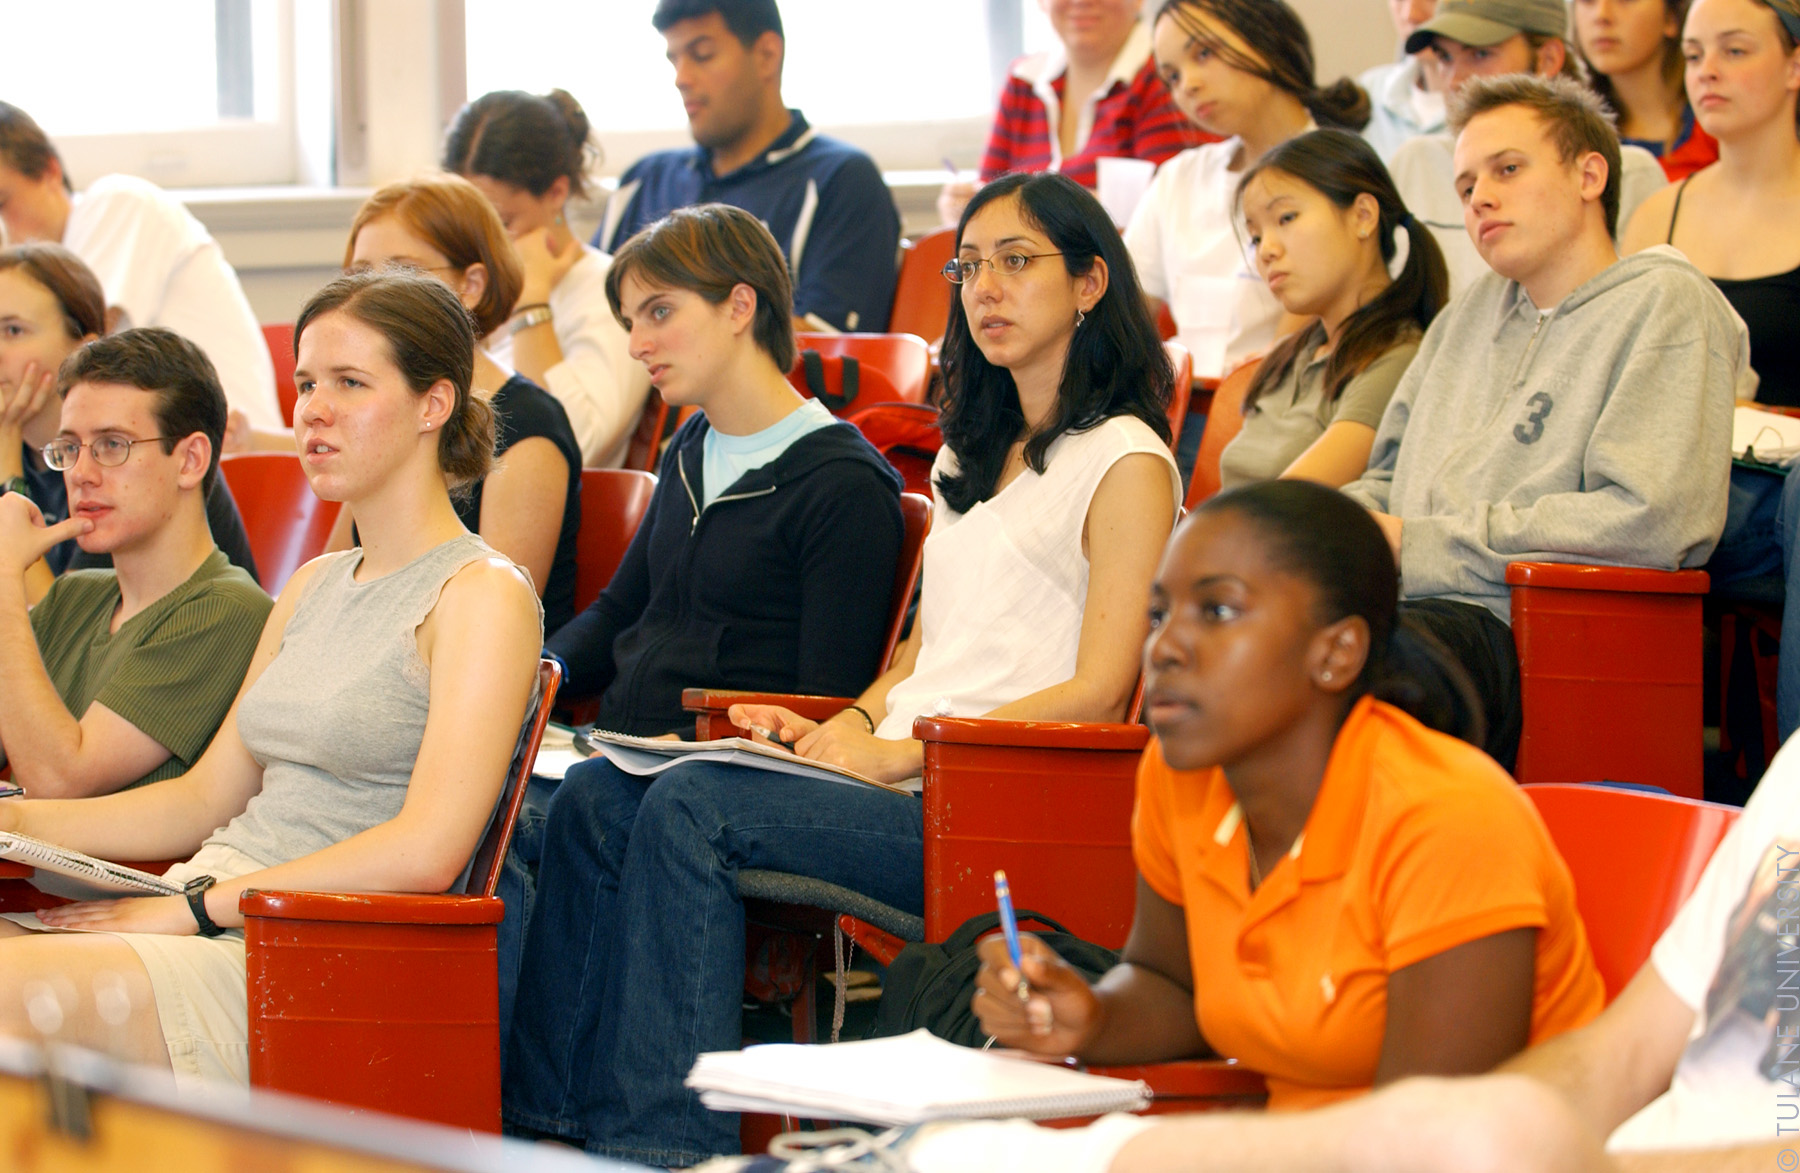 Students in Class, Credit: Wikimedia Commons